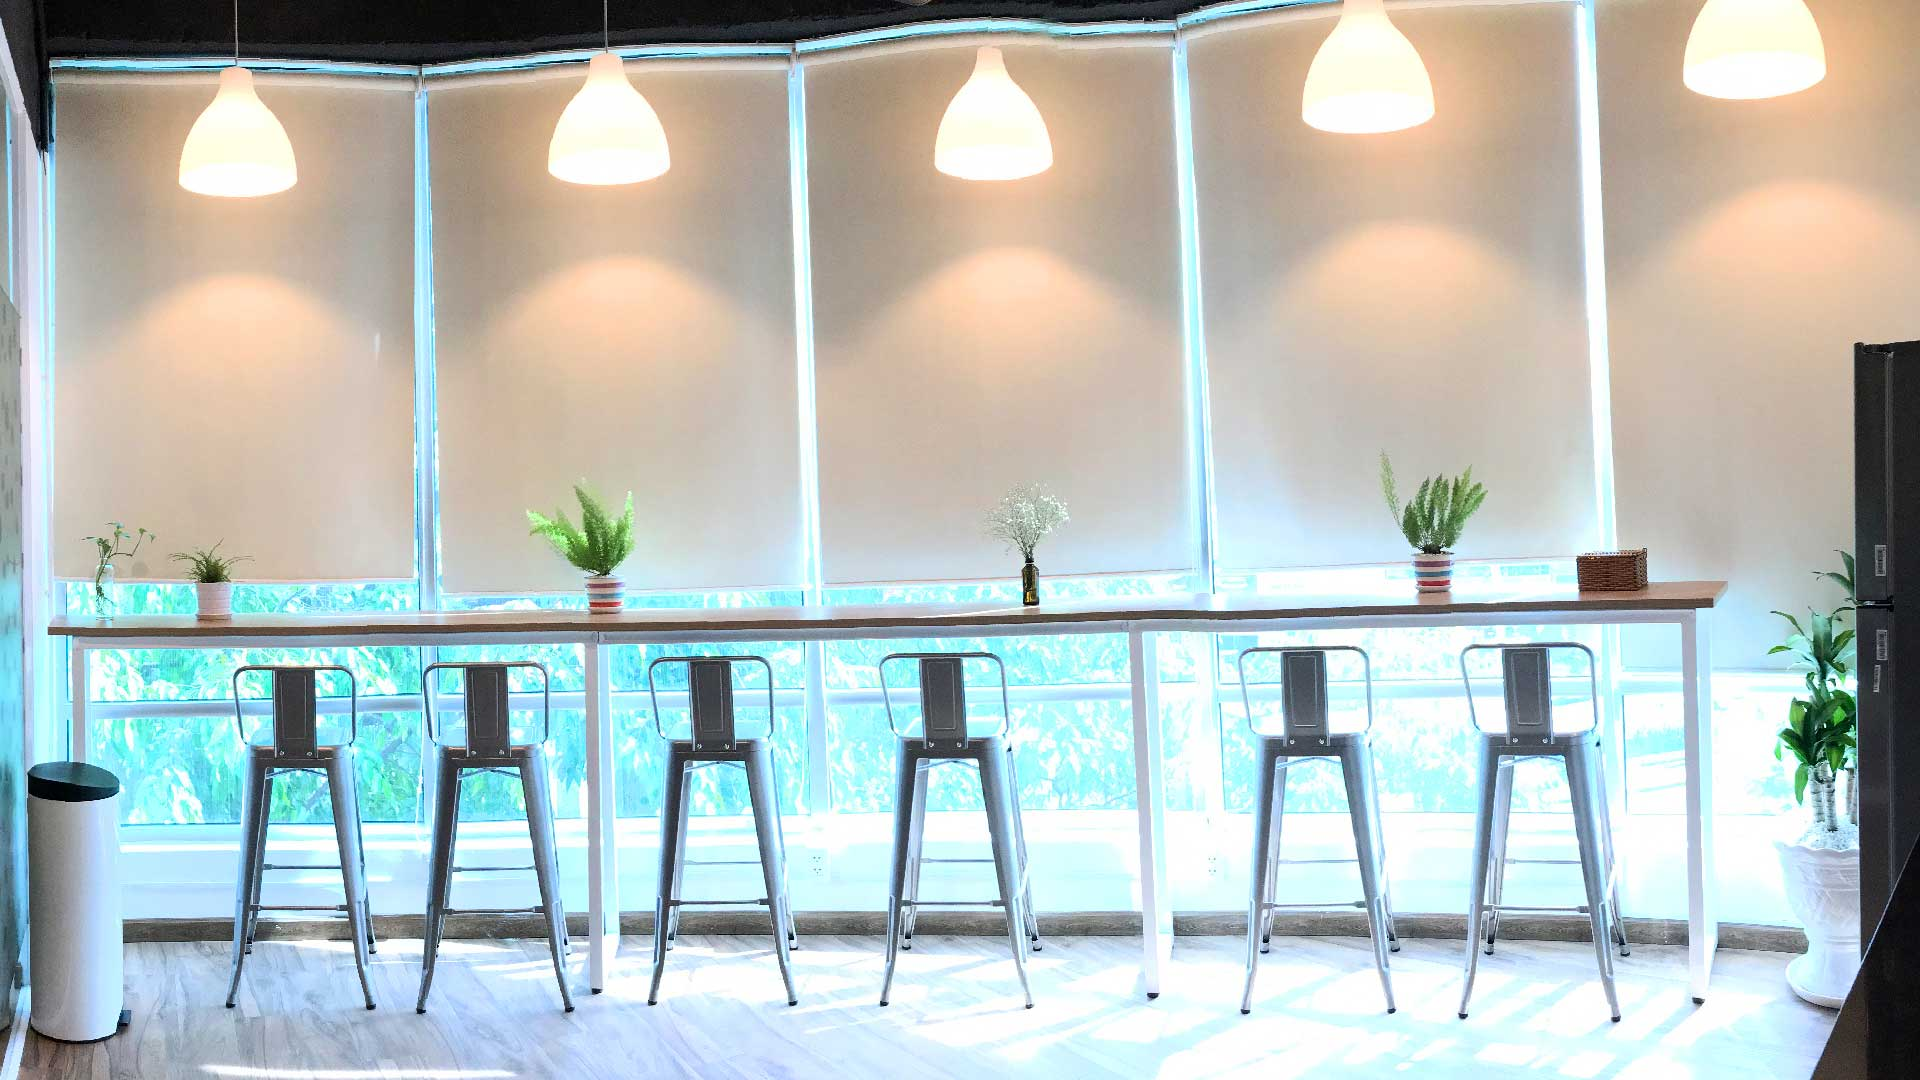 Artfolio - Coworking Cafe, Ho Chi Minh City - Read Reviews & Book Online